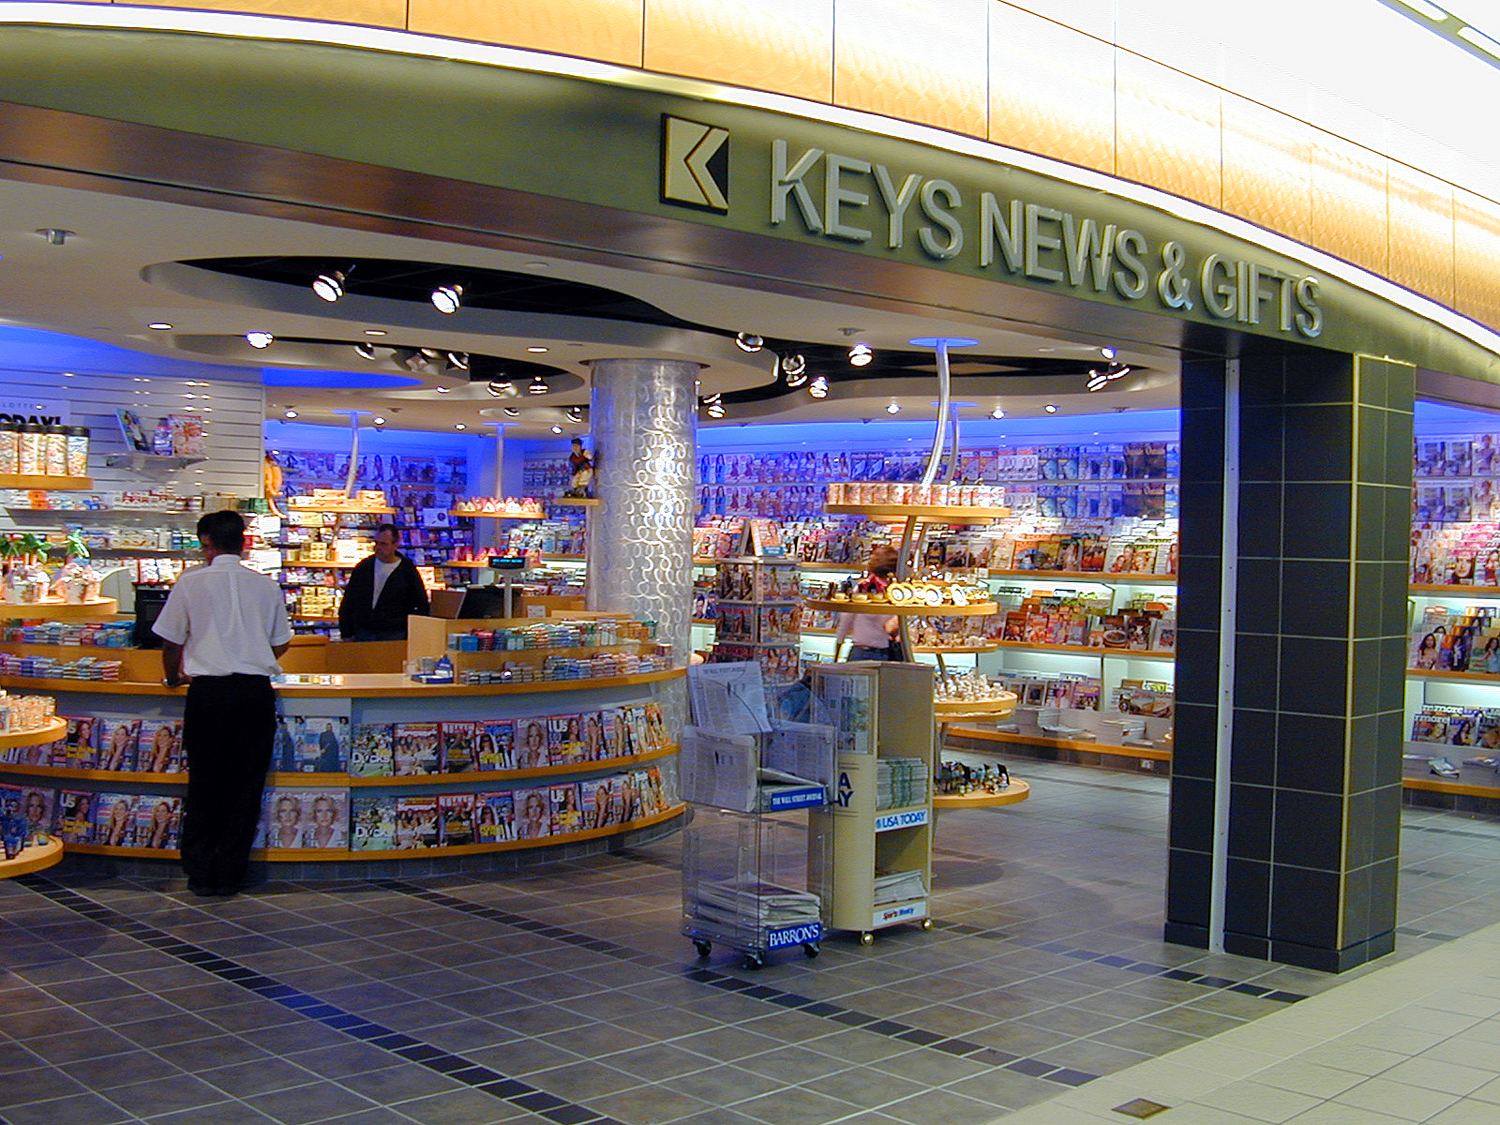 Keys News & Gifts